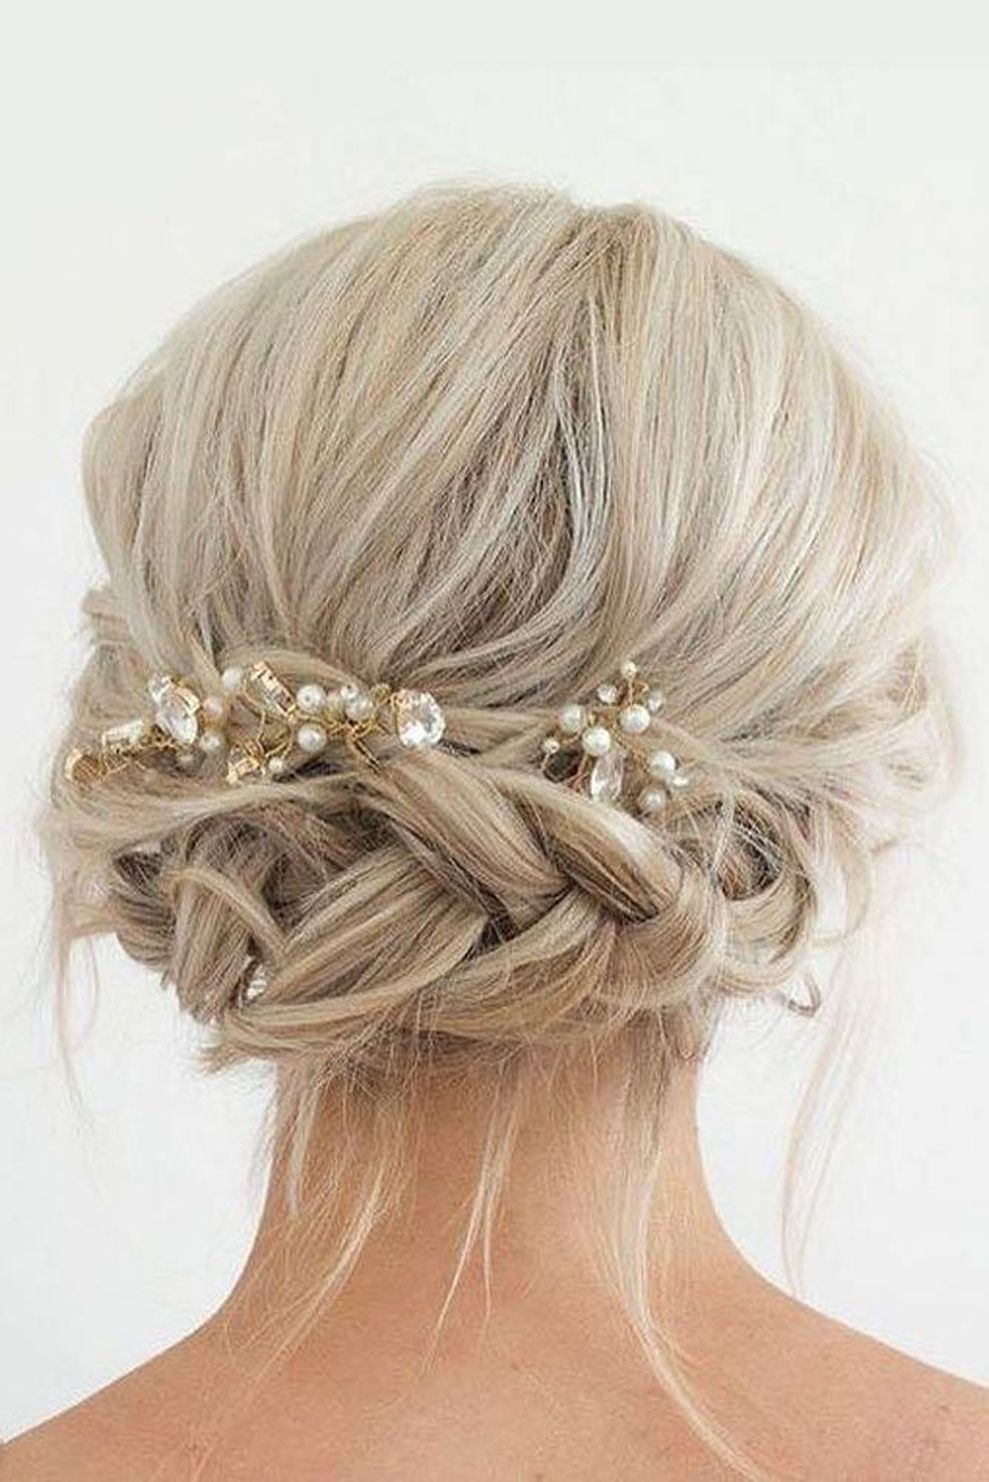 44 beautiful wedding hairstyle ideas for medium length hair